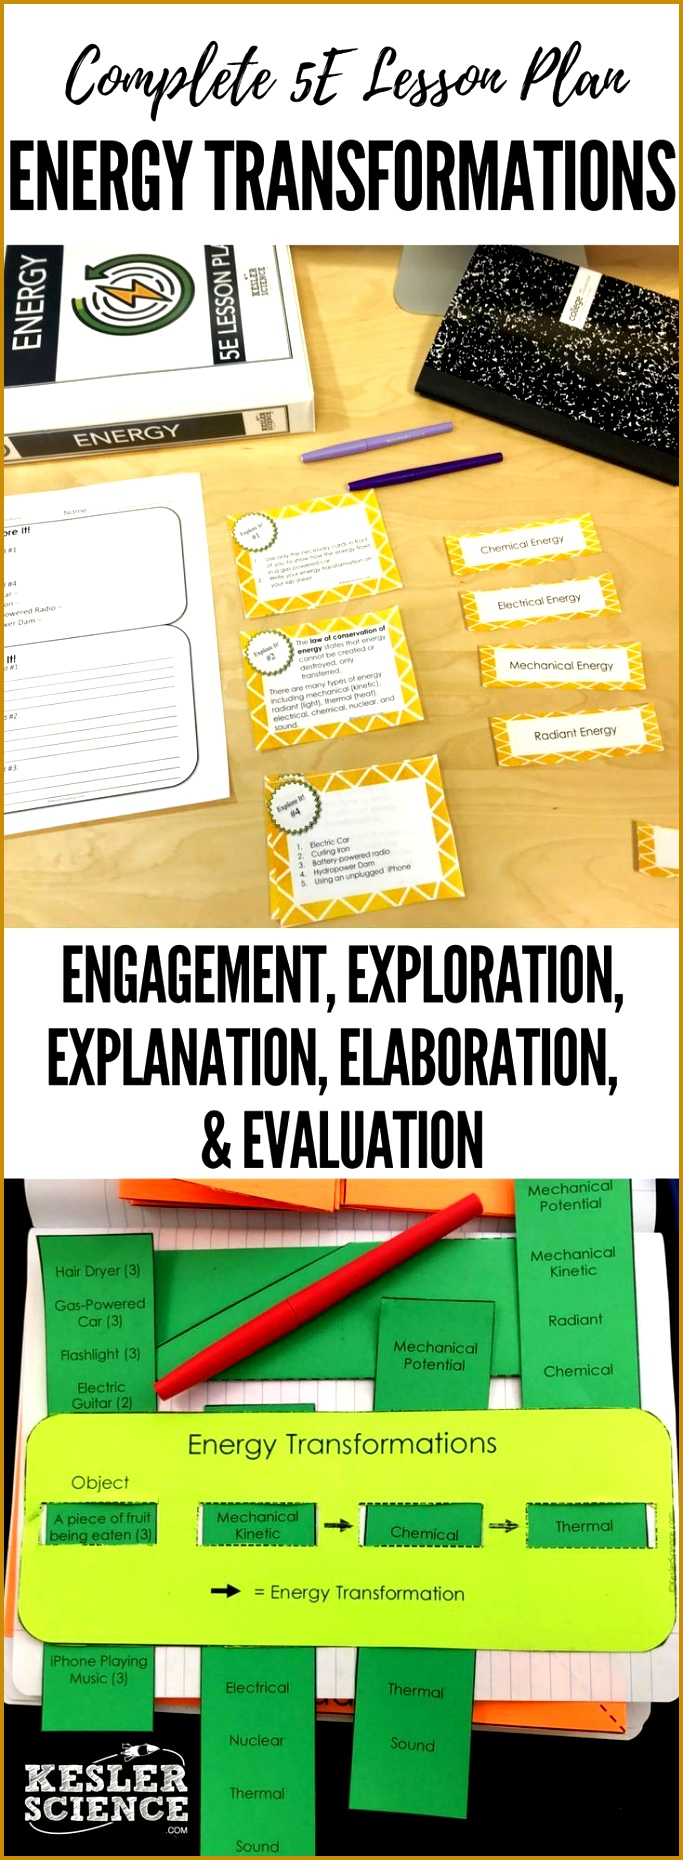 Energy Transformations 5E Lesson Plan ready to print and teach the entire energy unit Includes word wall of vocabulary interactive science notebook 1860683